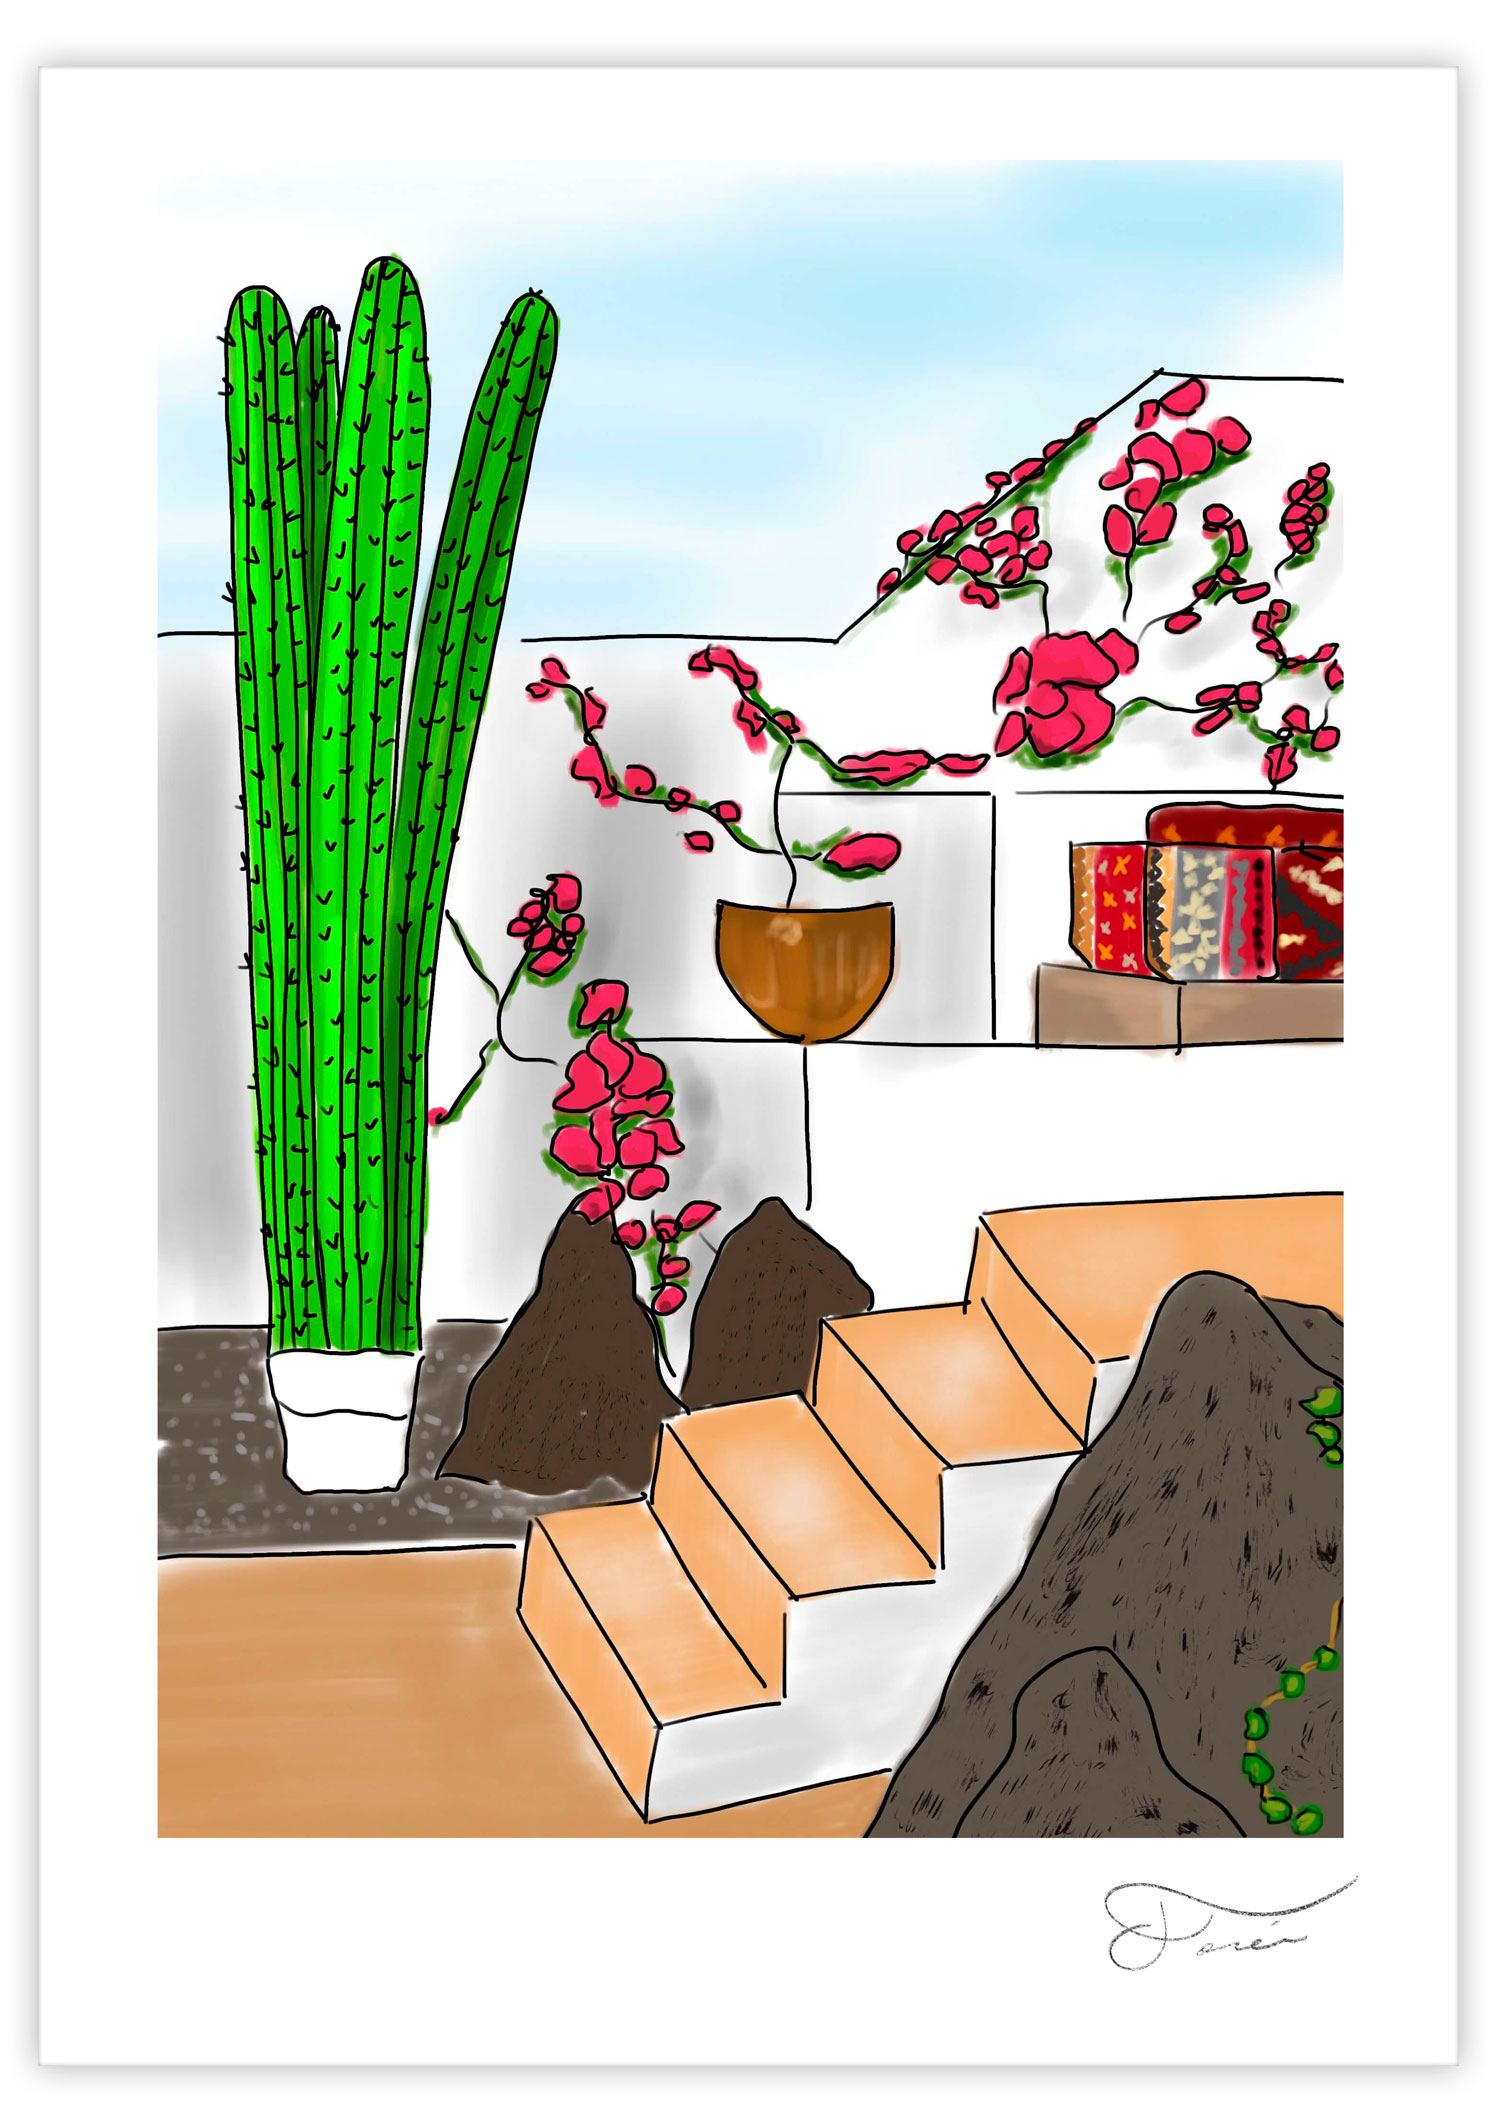 Cactus beach Carlos Forcen Ilustracion digital